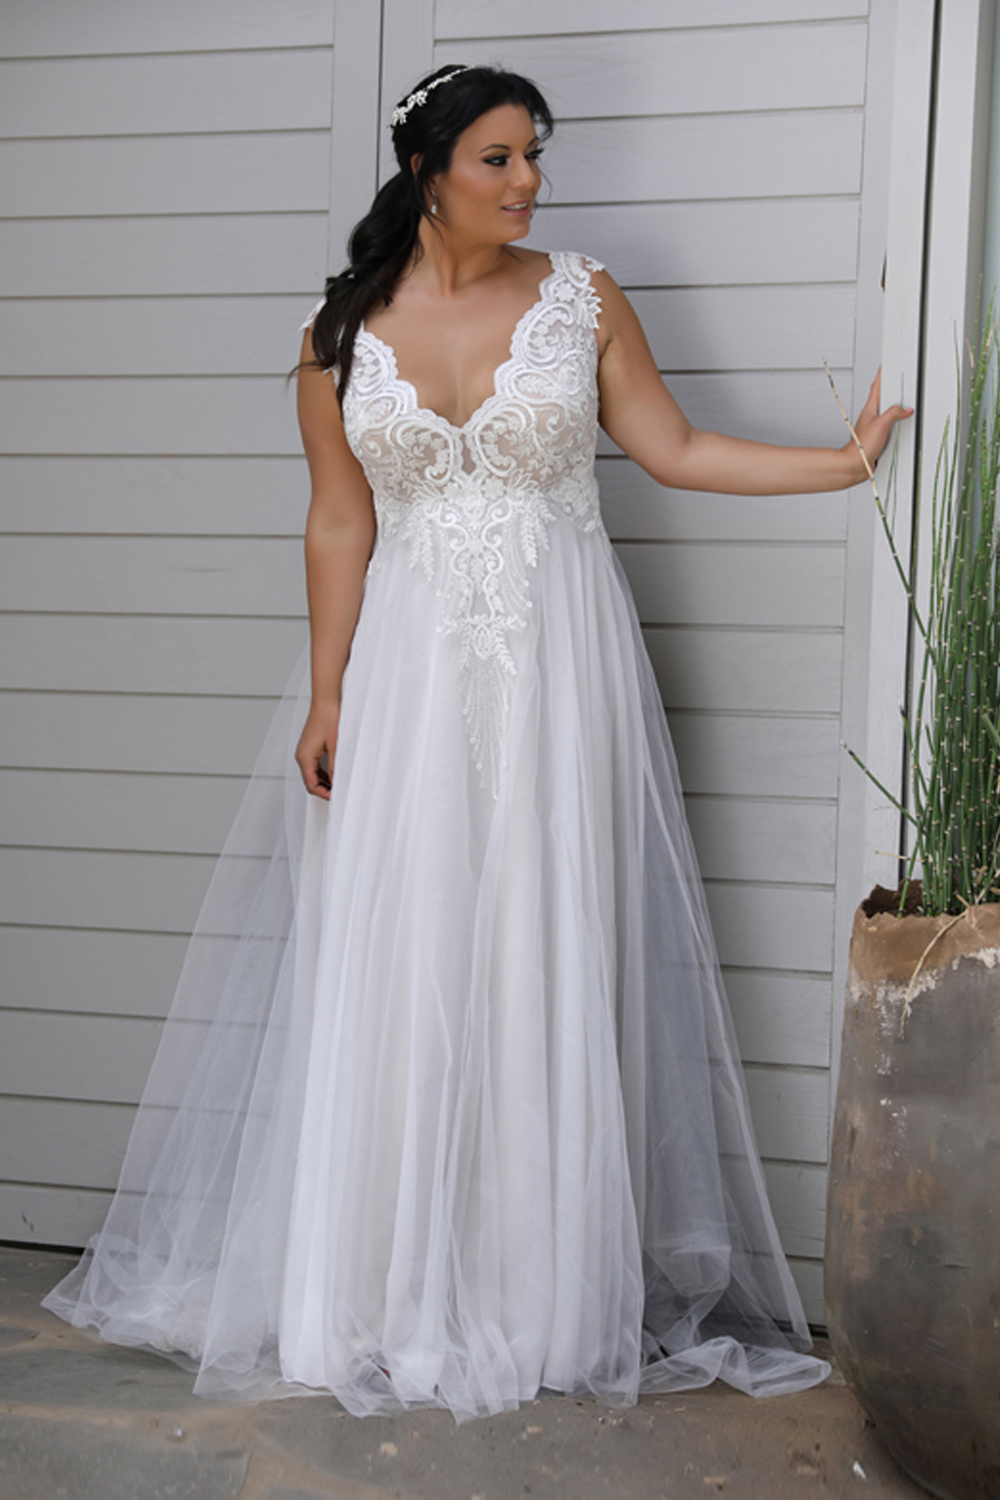 plus size wedding dresses australia